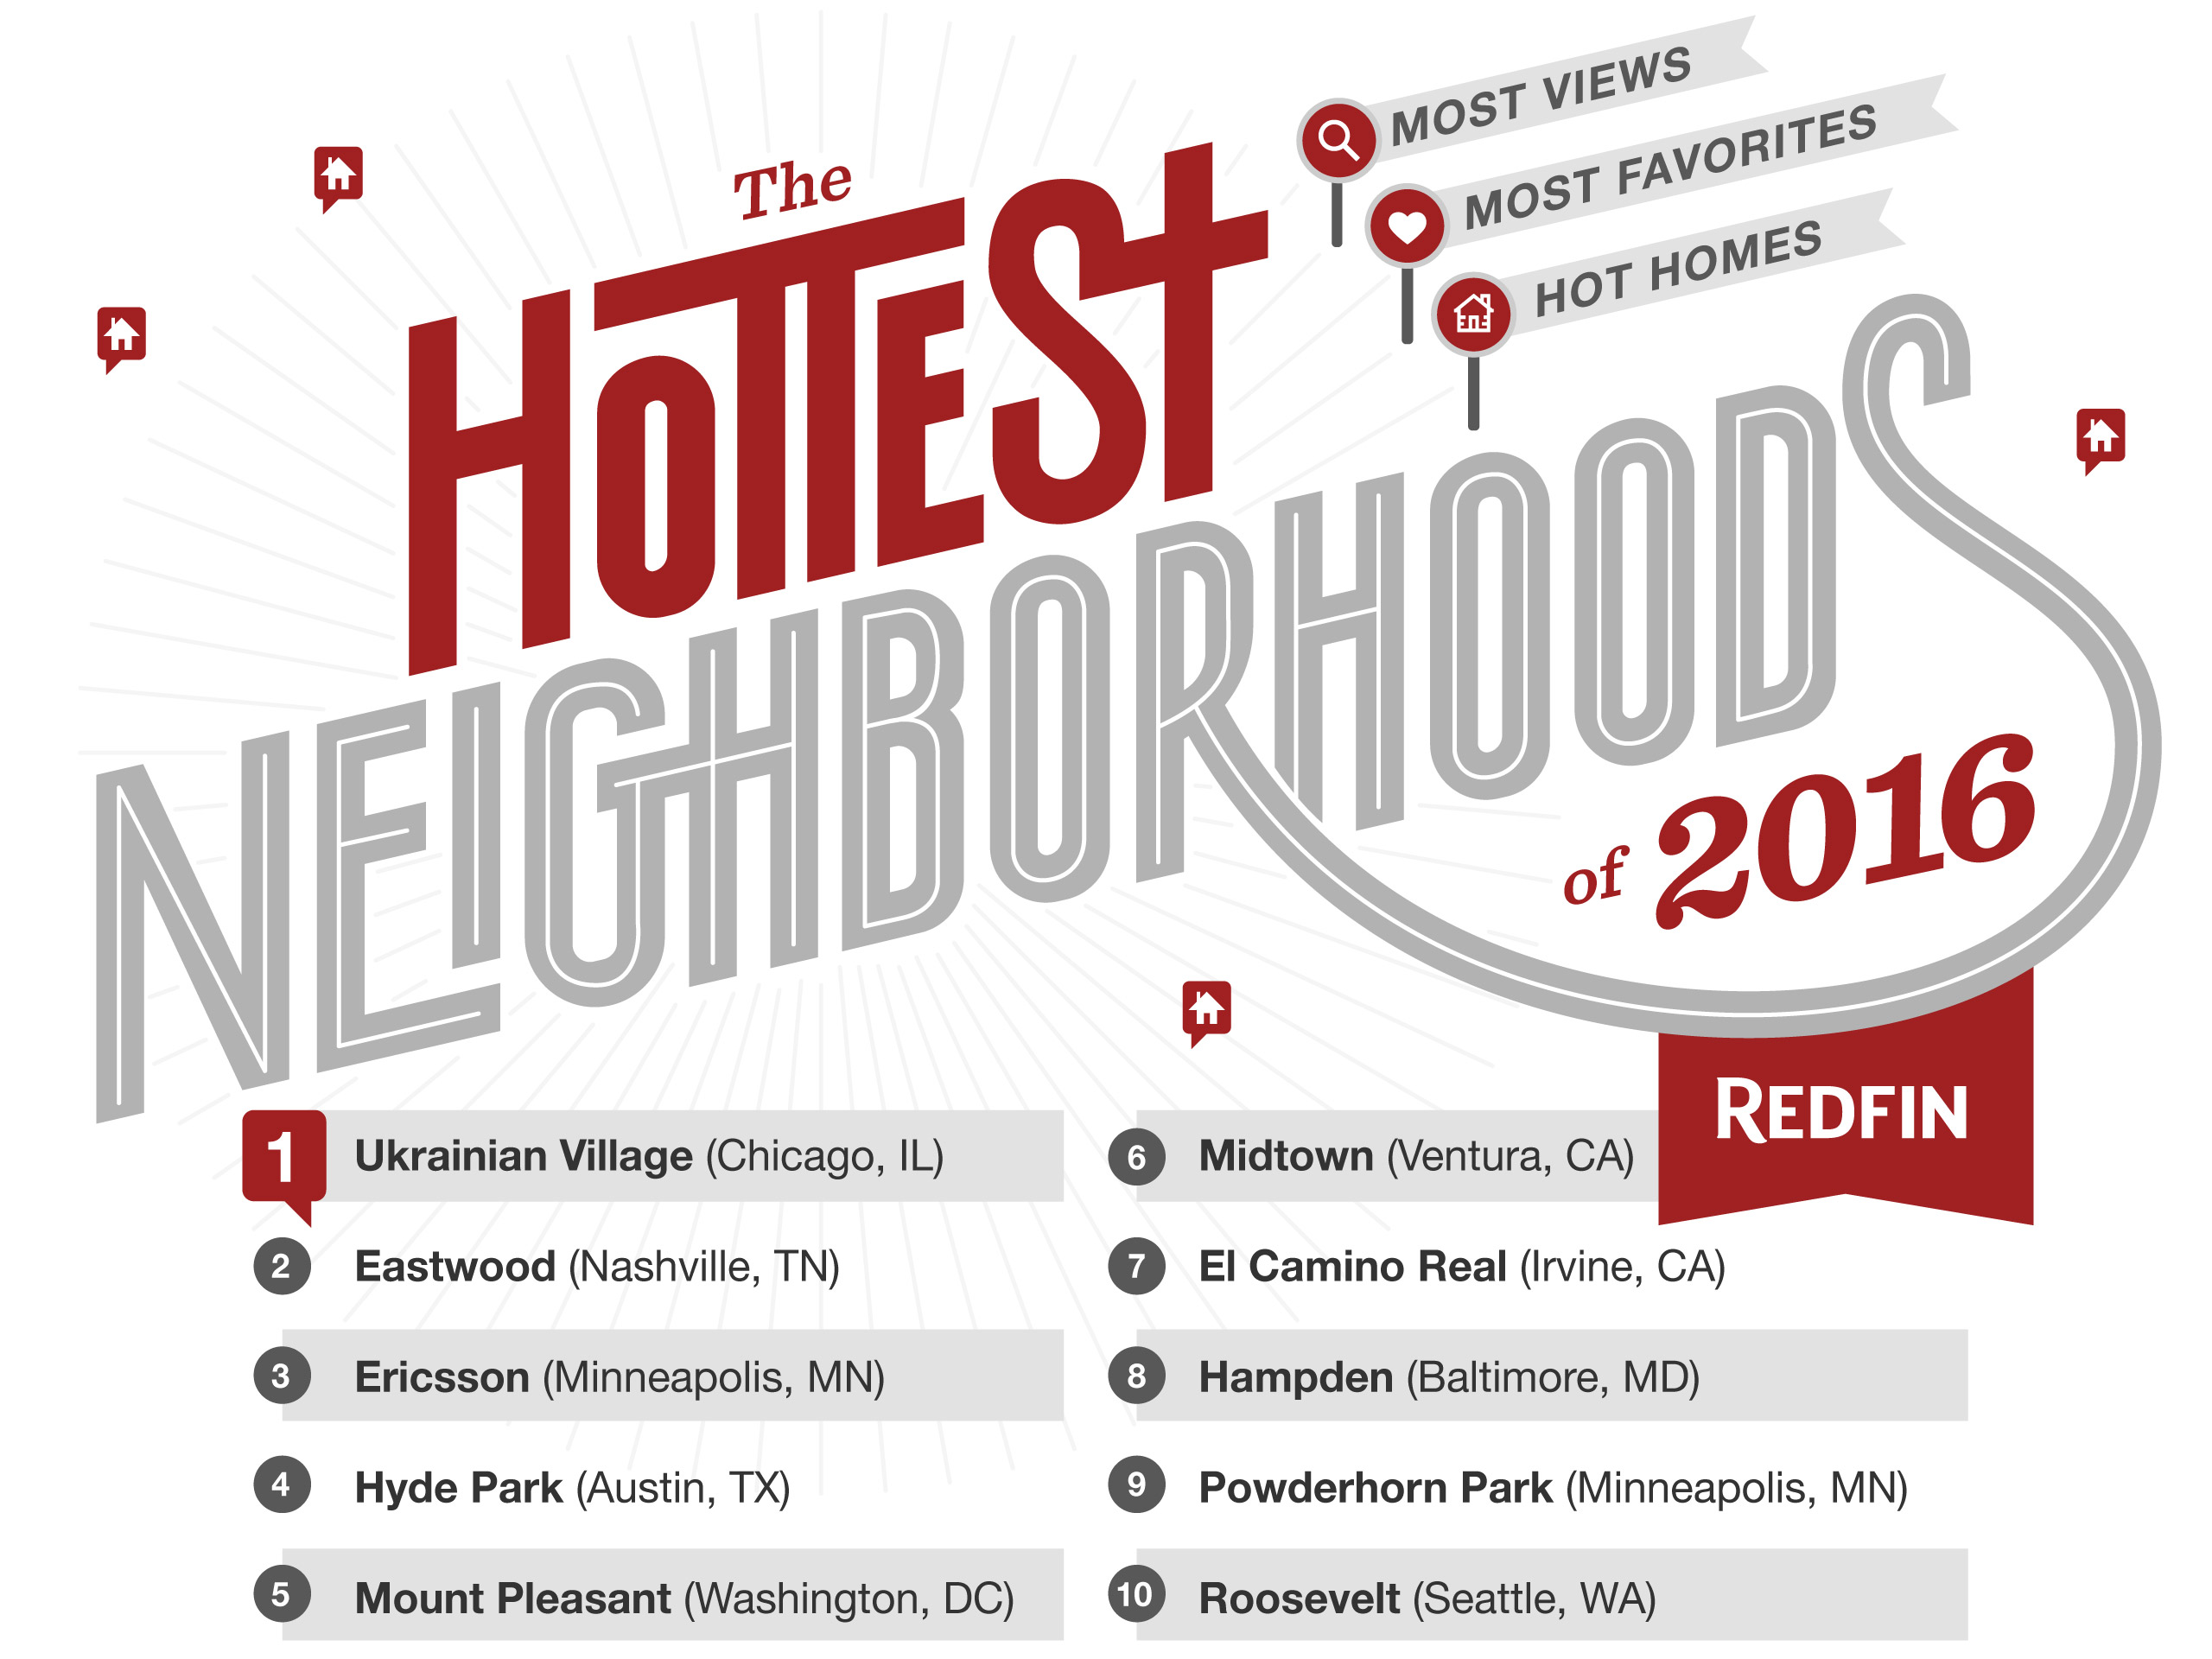 HottestNeighborhoodsof2016_Redfin